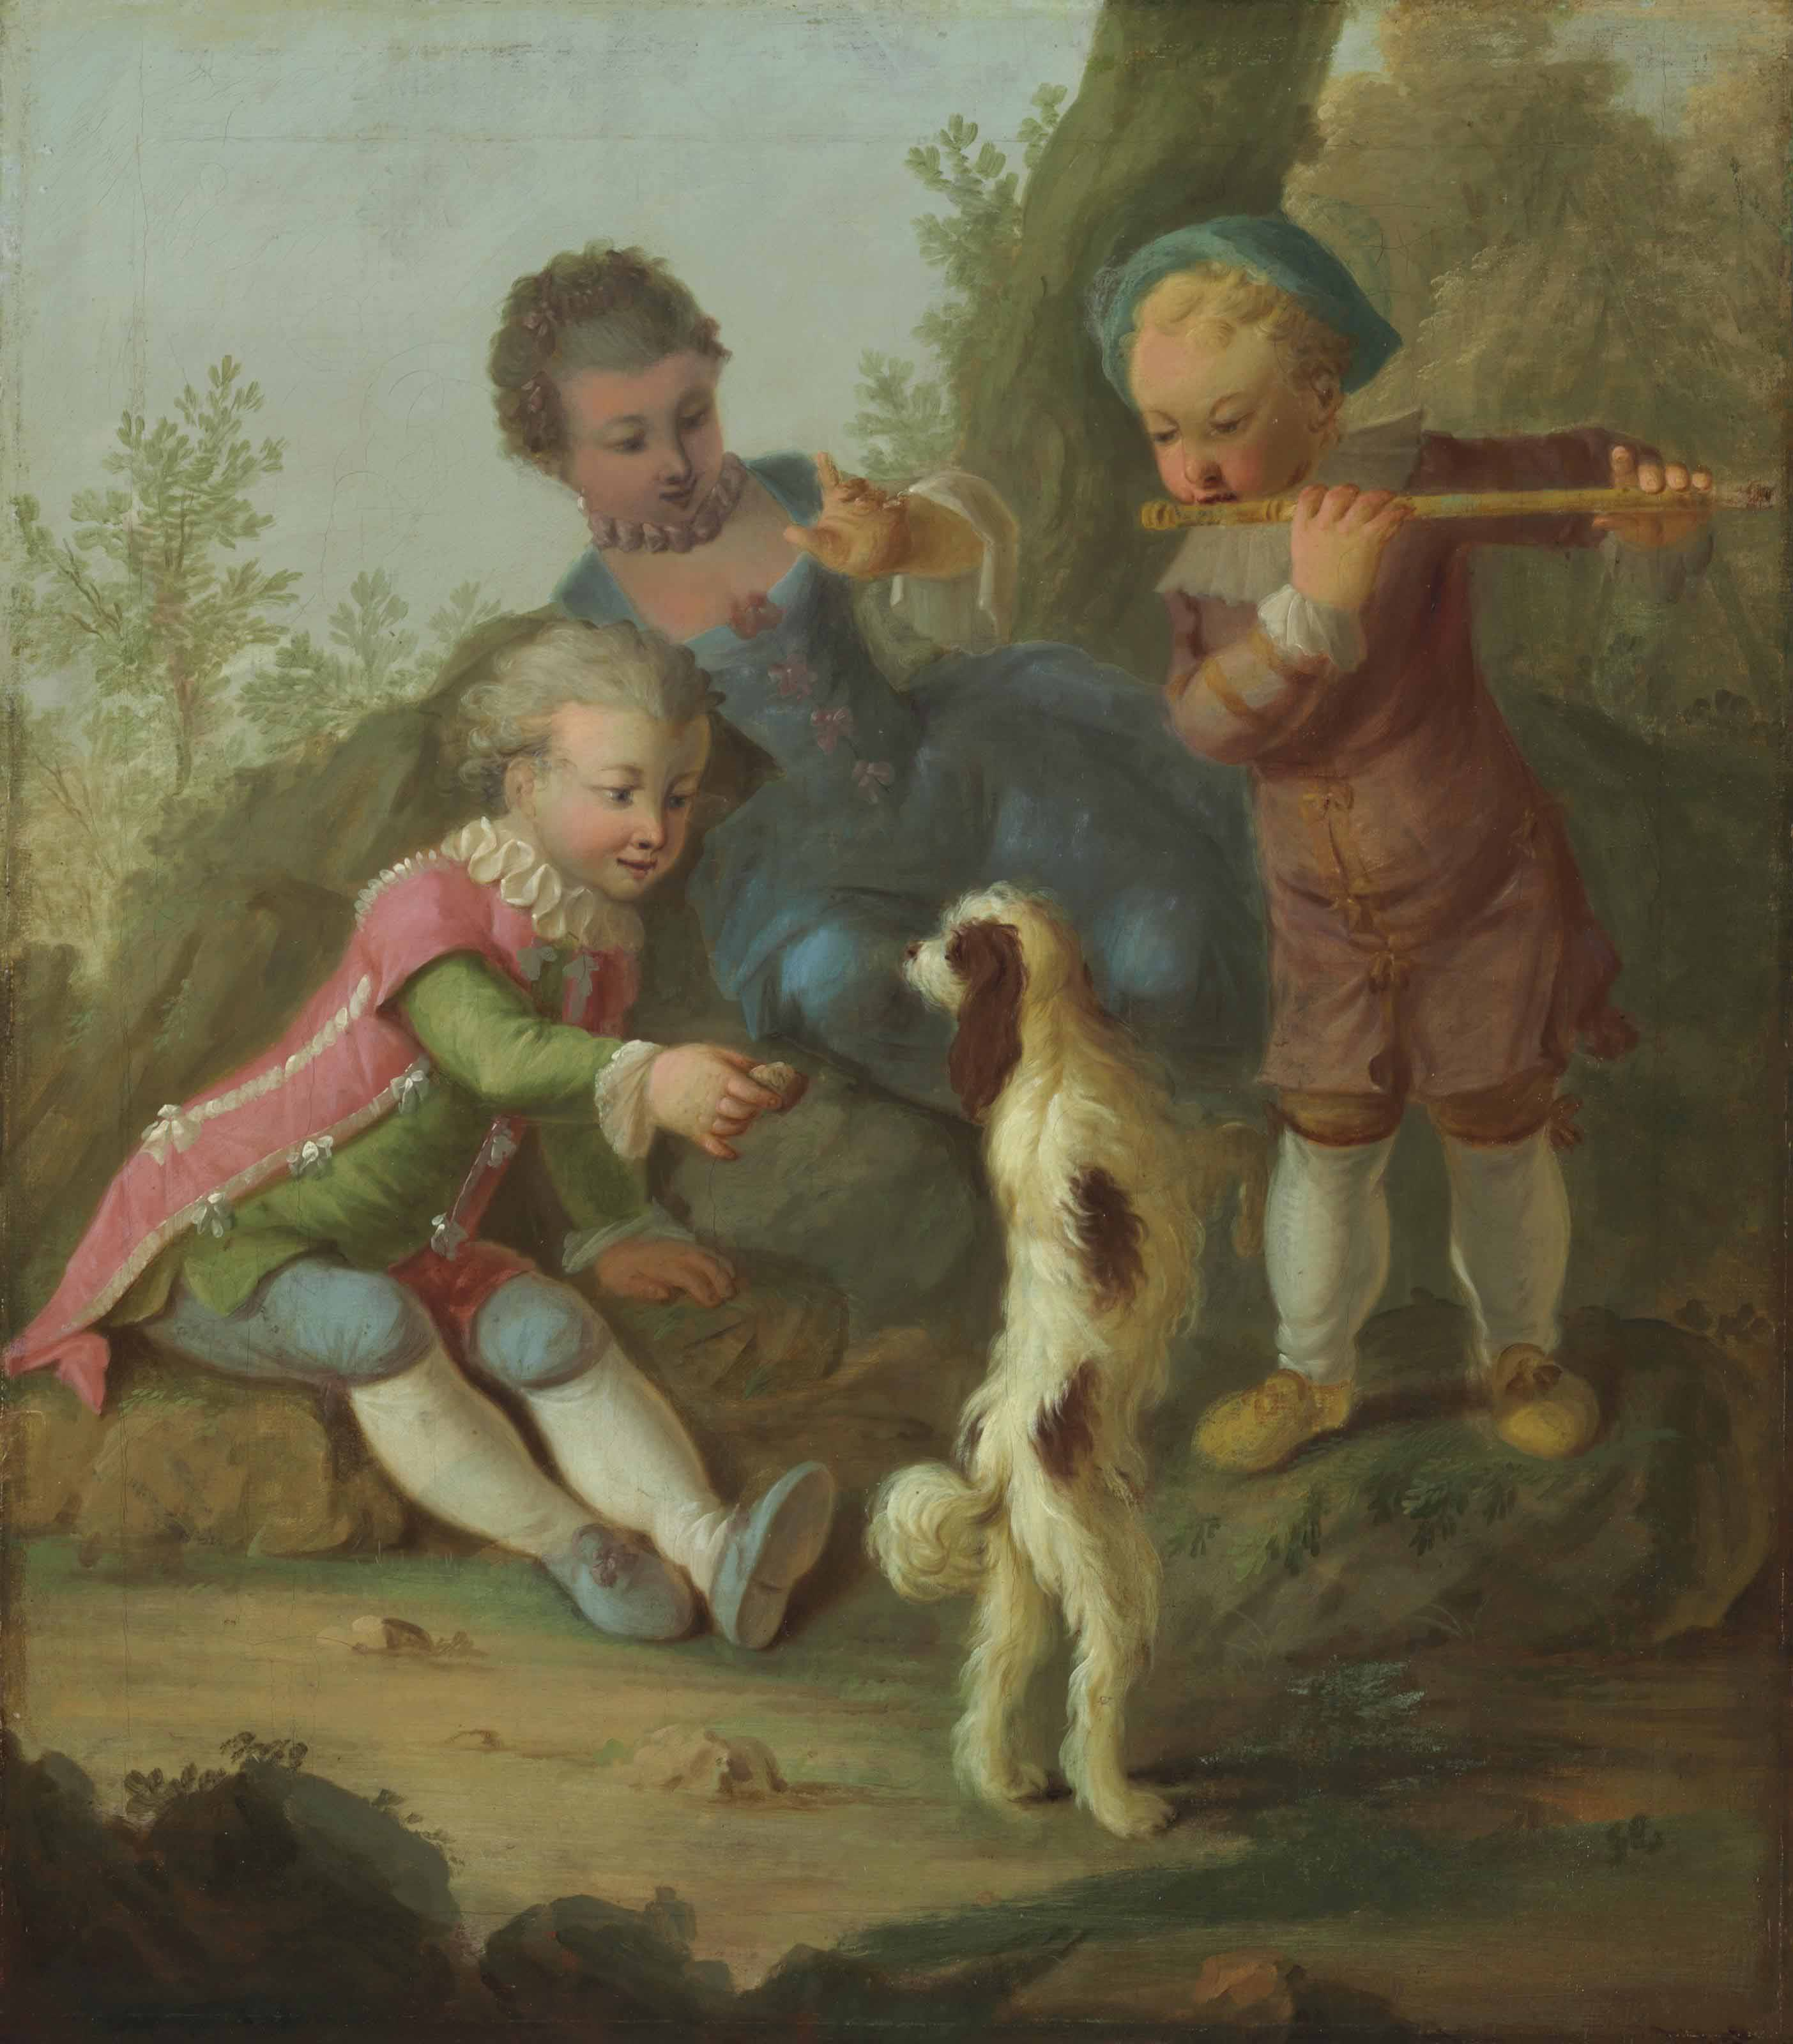 Three children playing with a dog